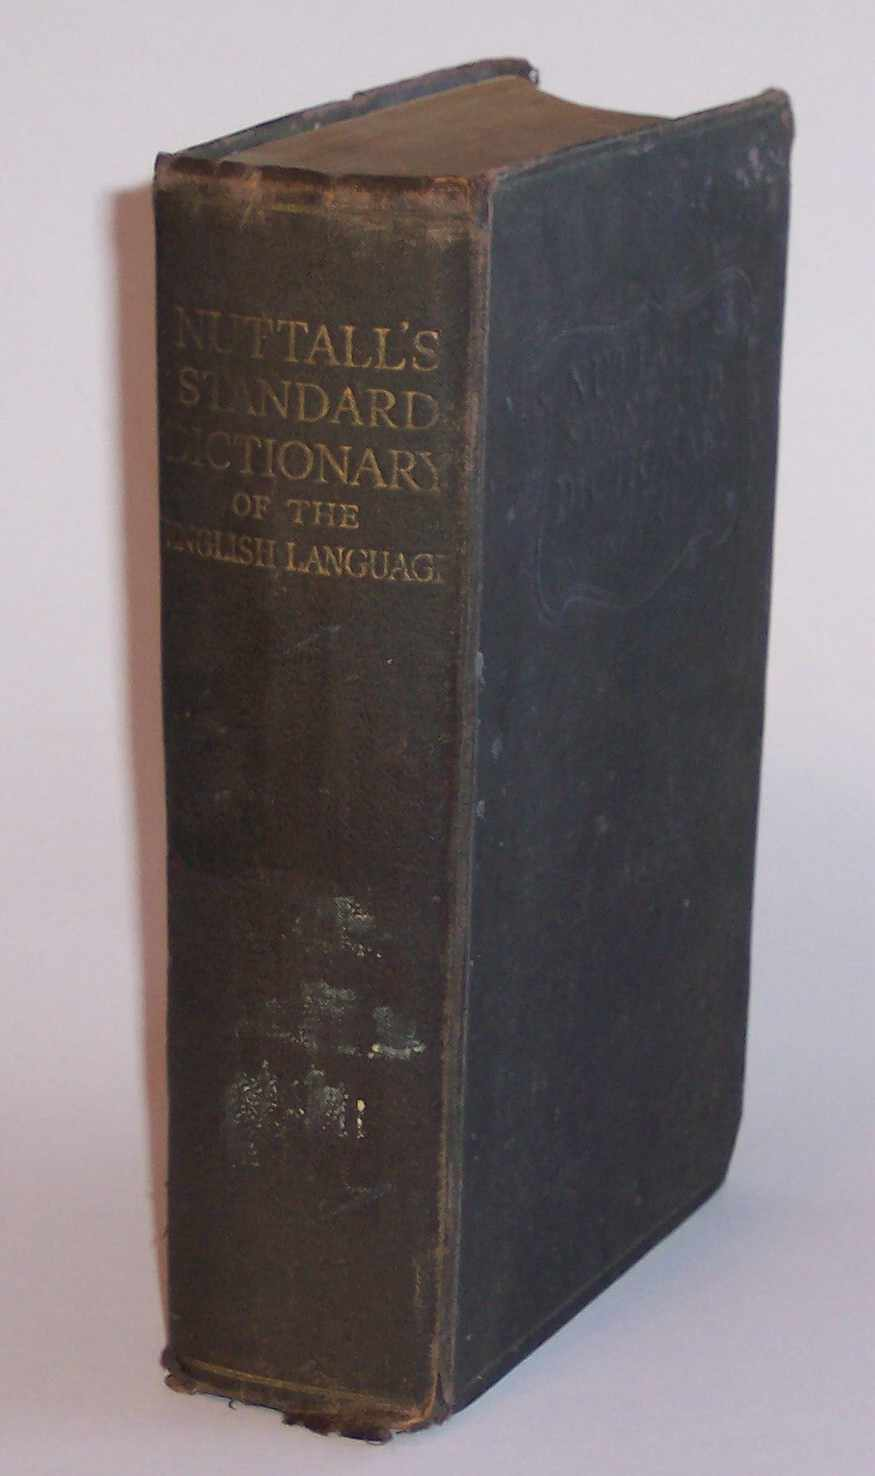 Image for Nuttall's Standard Dictionary of the English Language